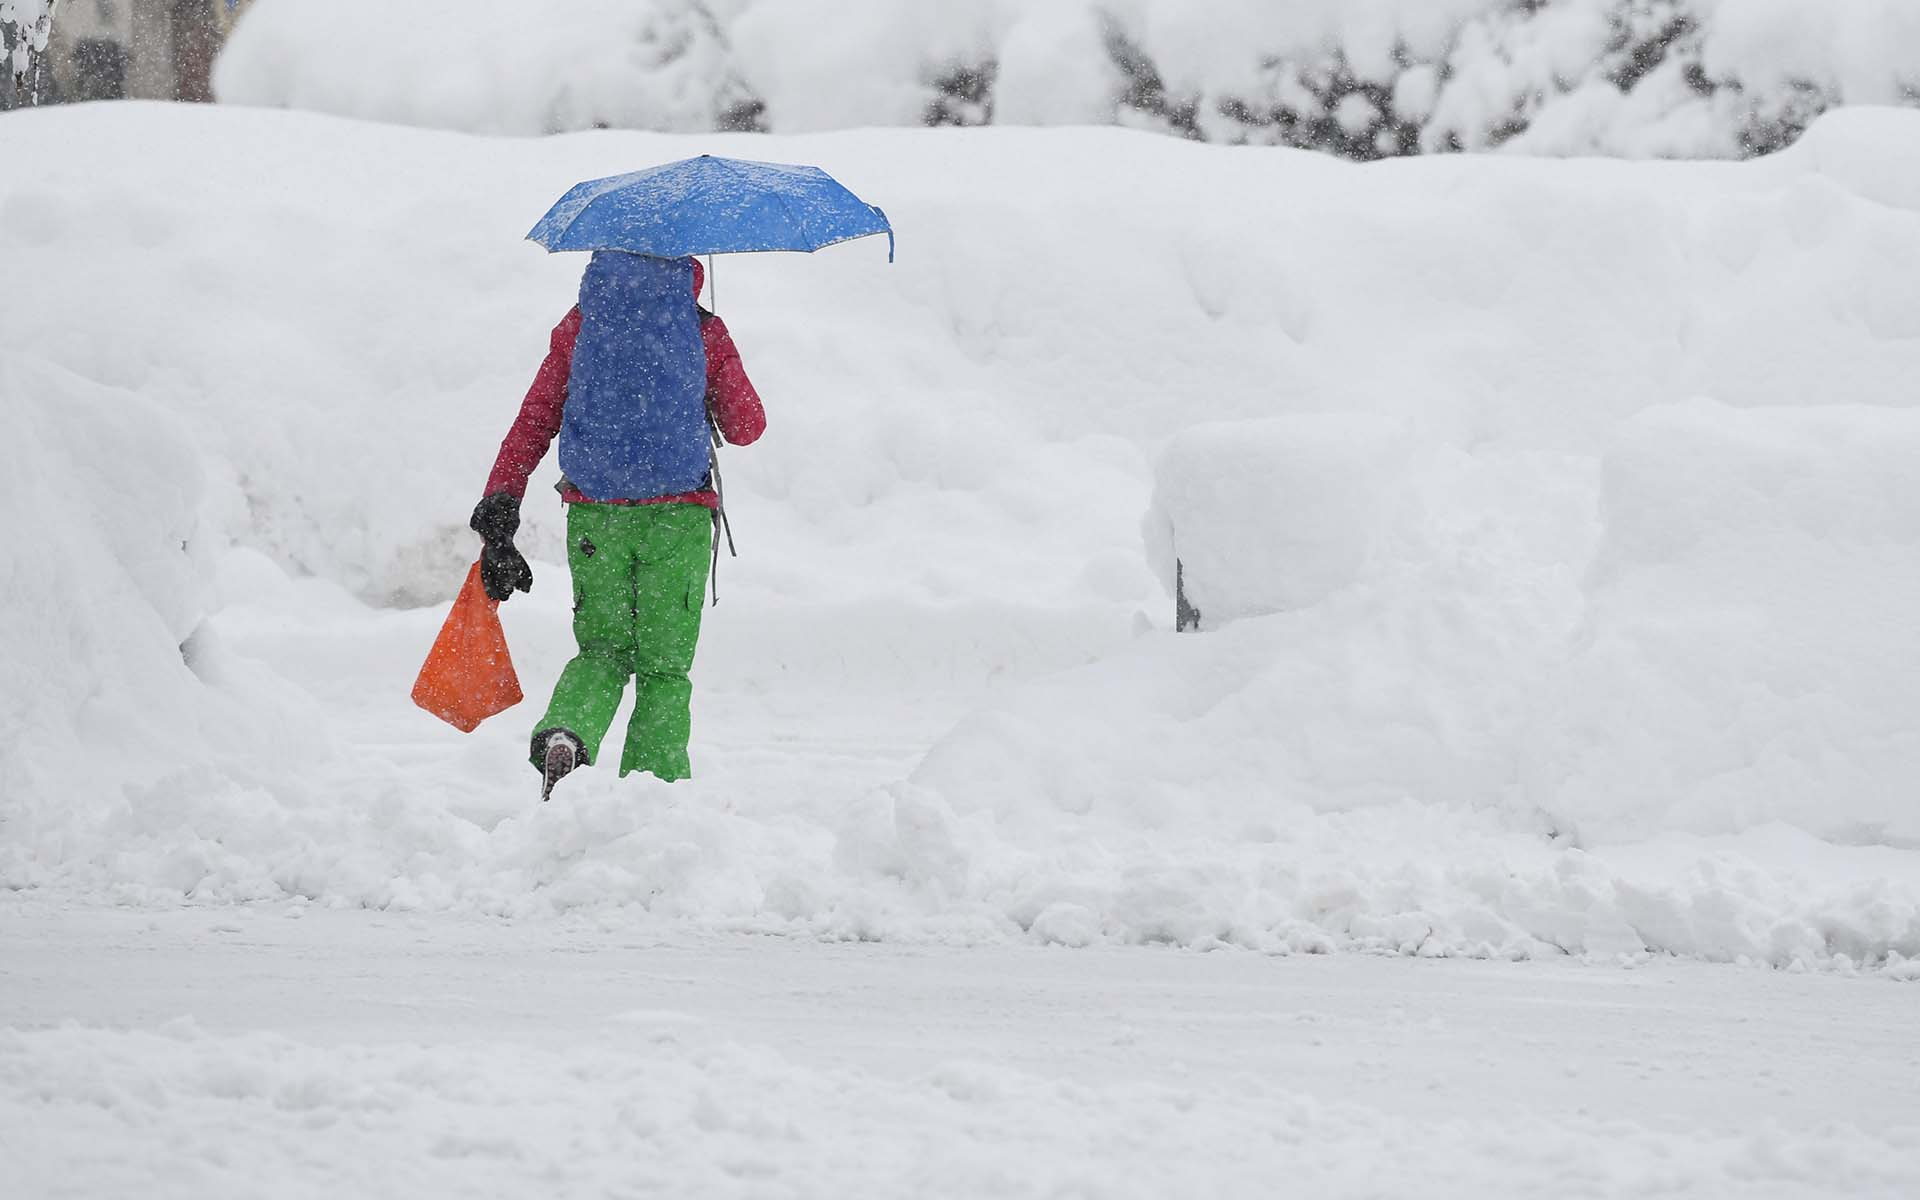 Una mujer camina por la nieve en A woman walks through the snow in Berchtesgaden, Alemania (REUTERS/Andreas Gebert)